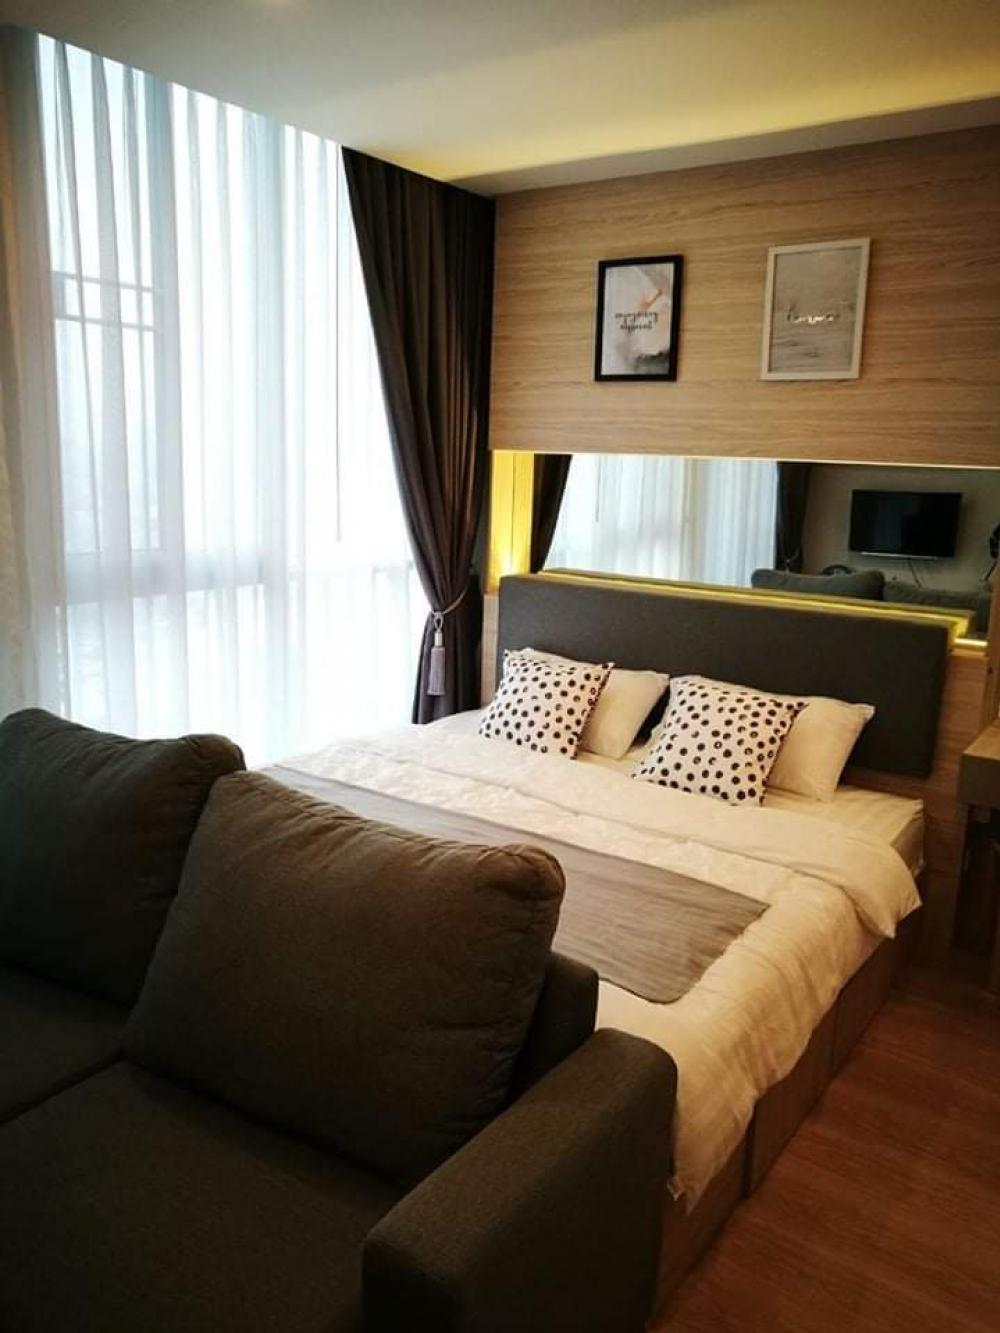 For RentCondoRatchadapisek, Huaikwang, Suttisan : Condo for rent, beautiful built-in room, full of Noble Revolve Ratchada project, next to MRT, Cultural Center Studio room on 27th floor overlooking Ratchada and Esplanade roads.